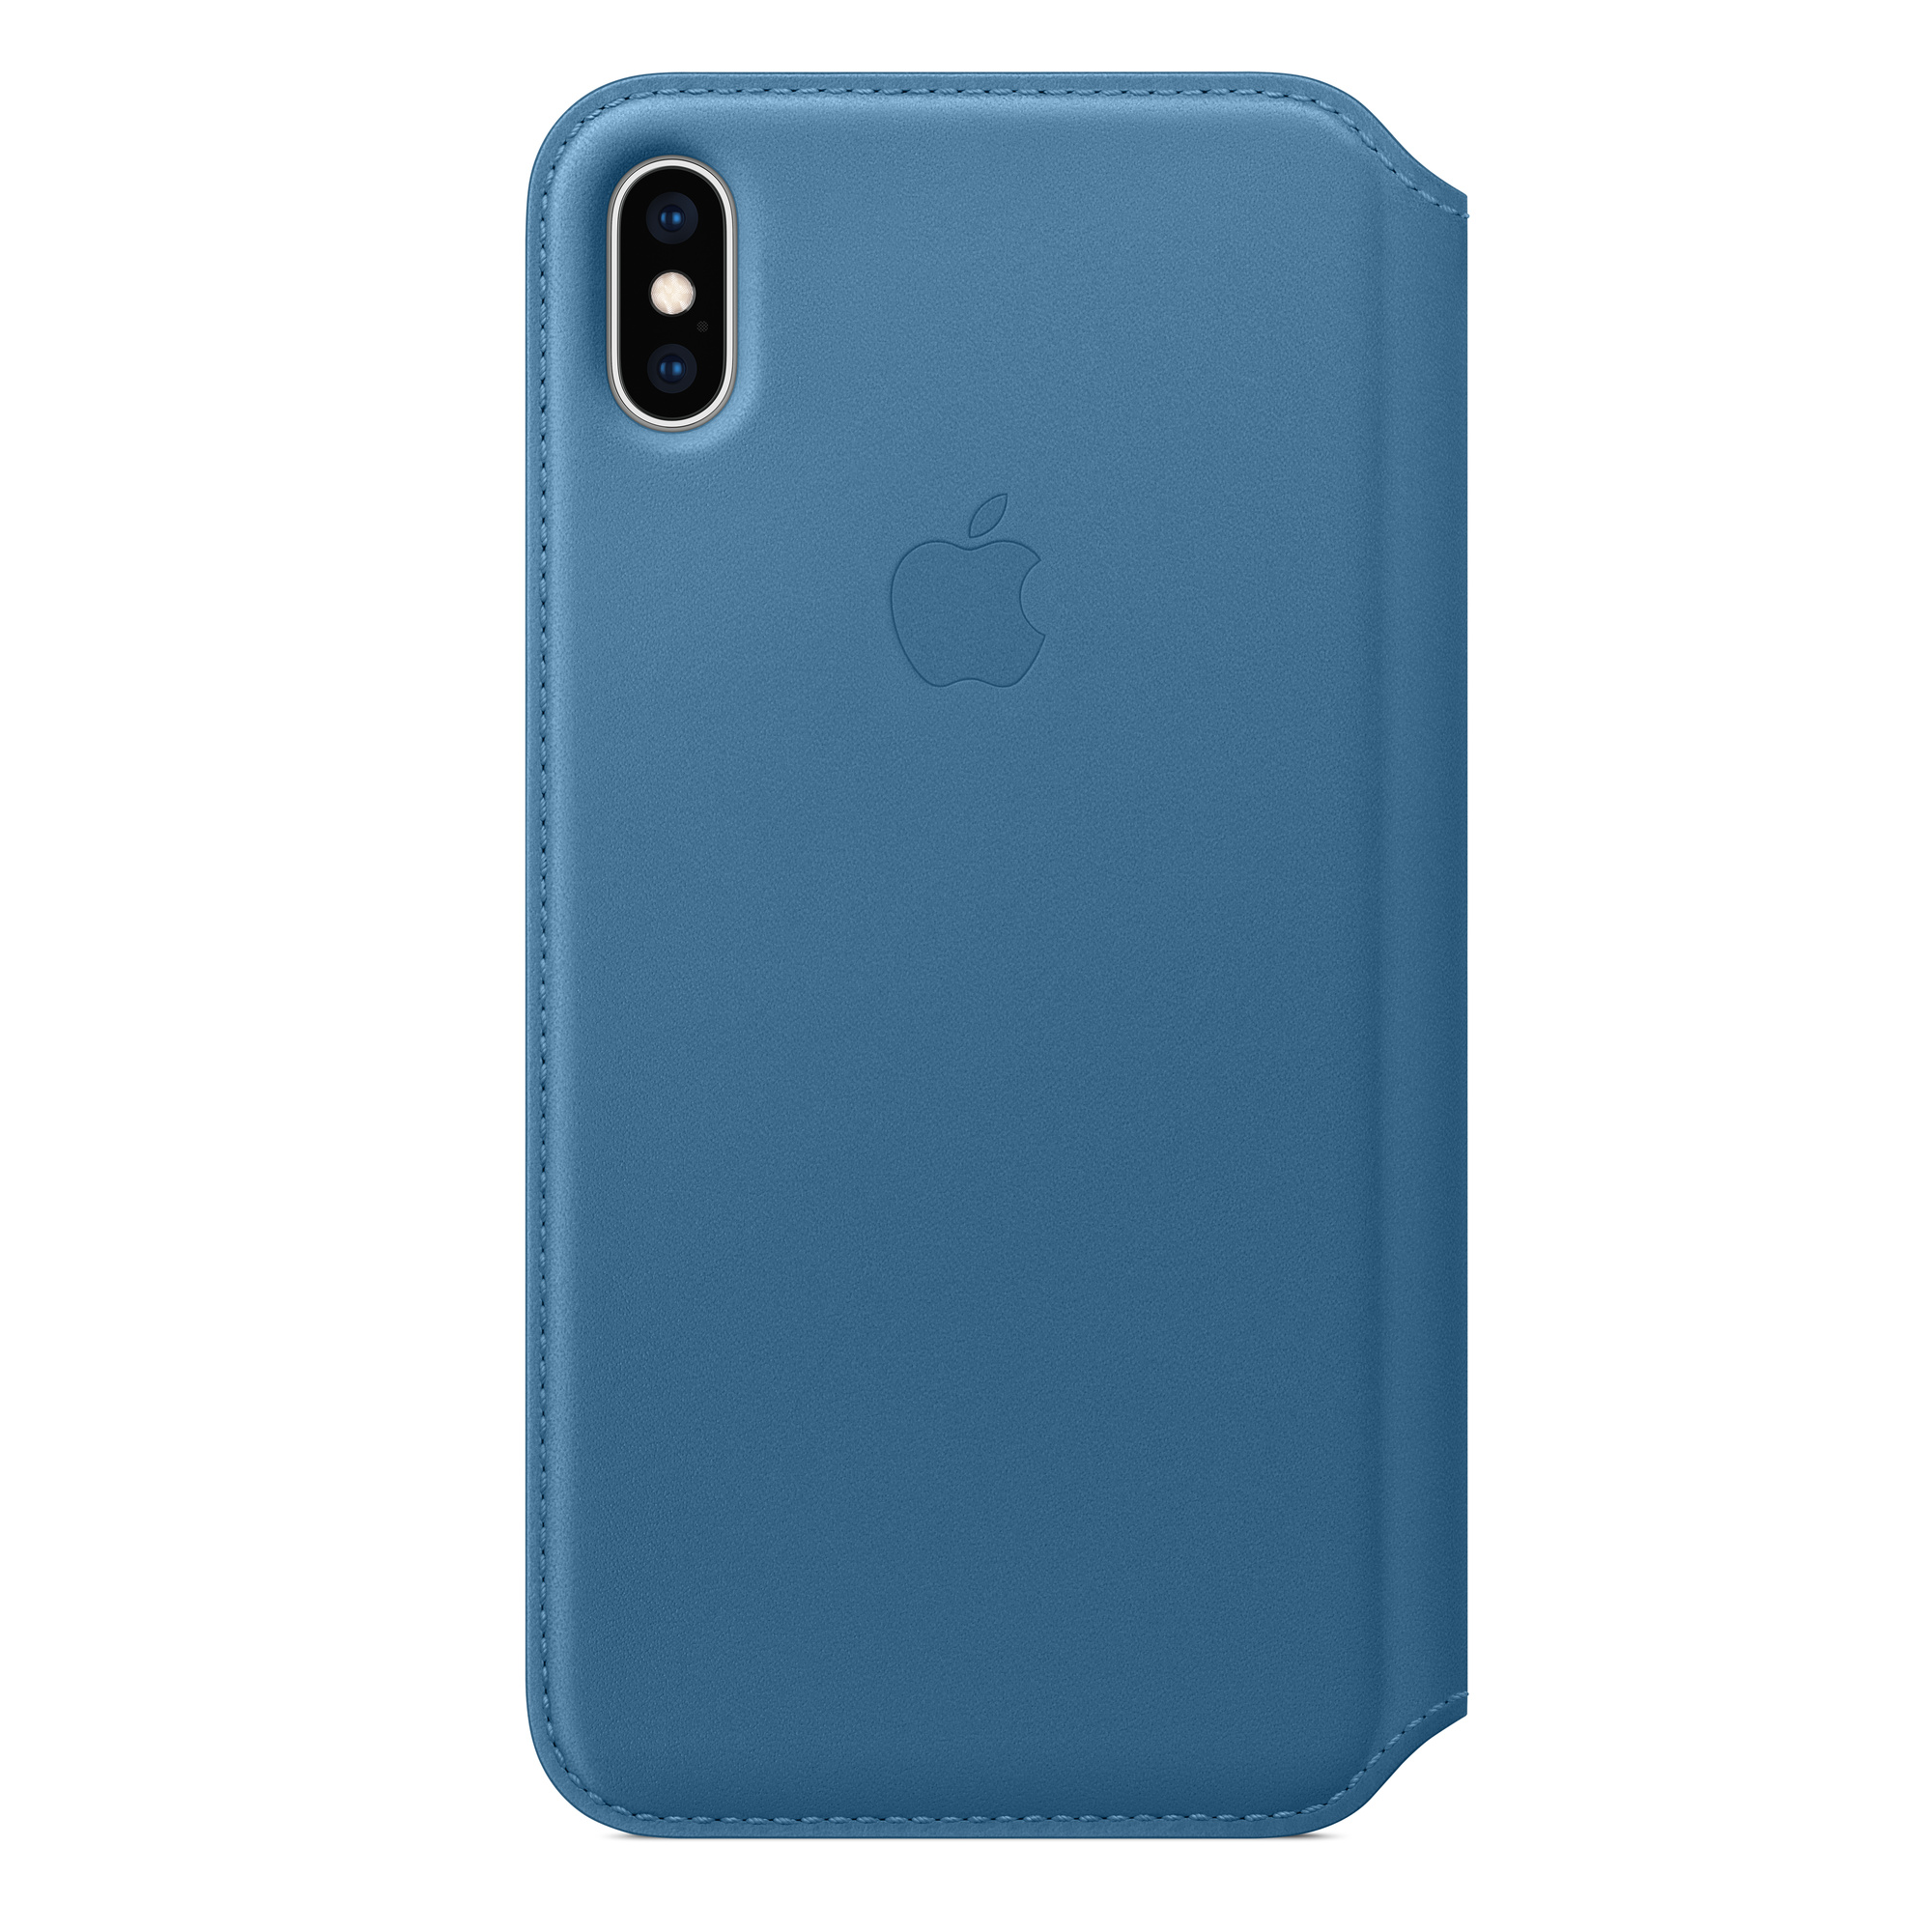 outlet store 5135a 626b7 iPhone XS Max Leather Folio - Cape Cod Blue